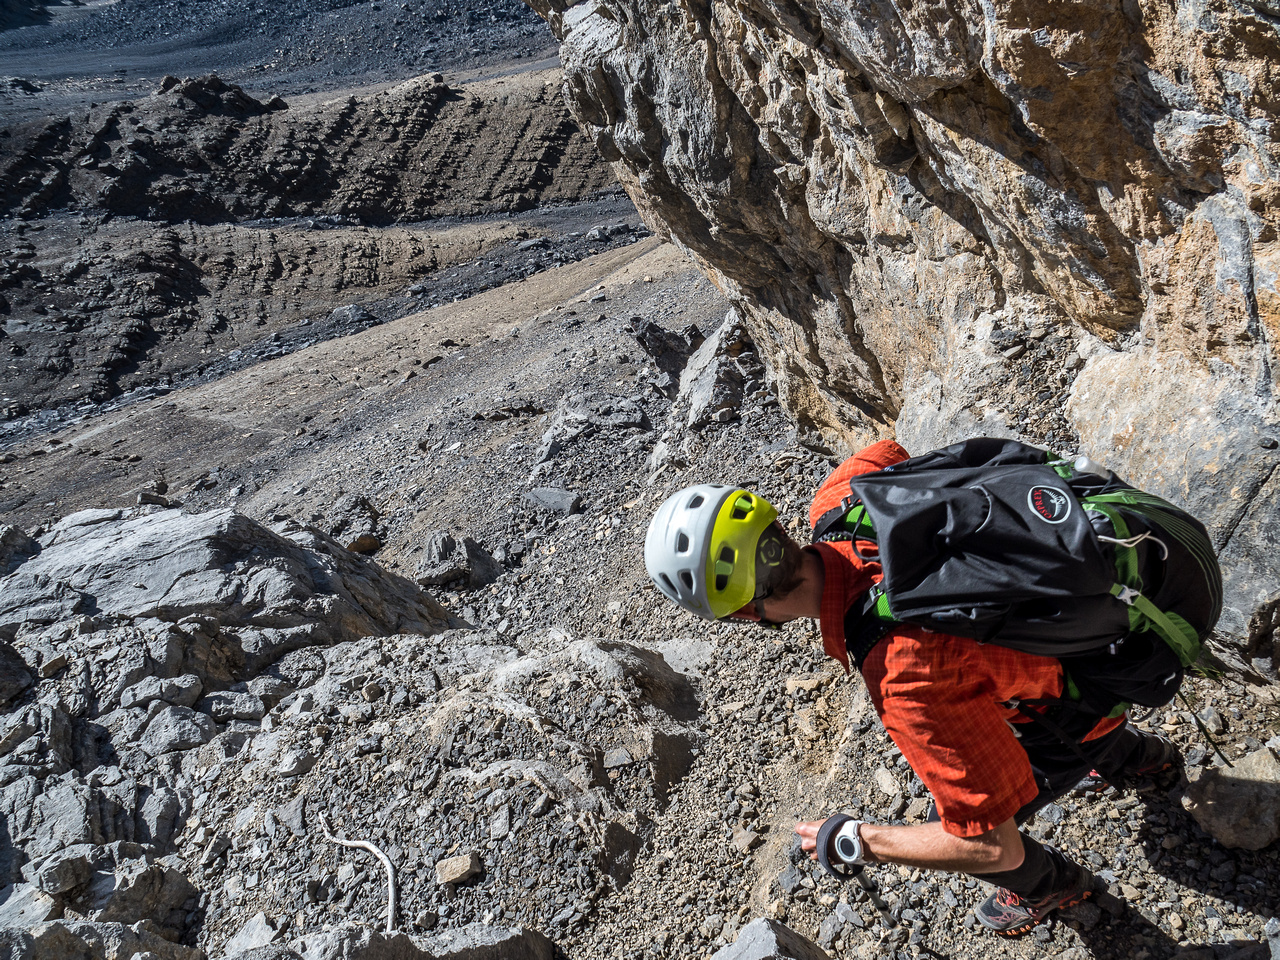 Navigating the loose gully that breaks through the lower cliff band.